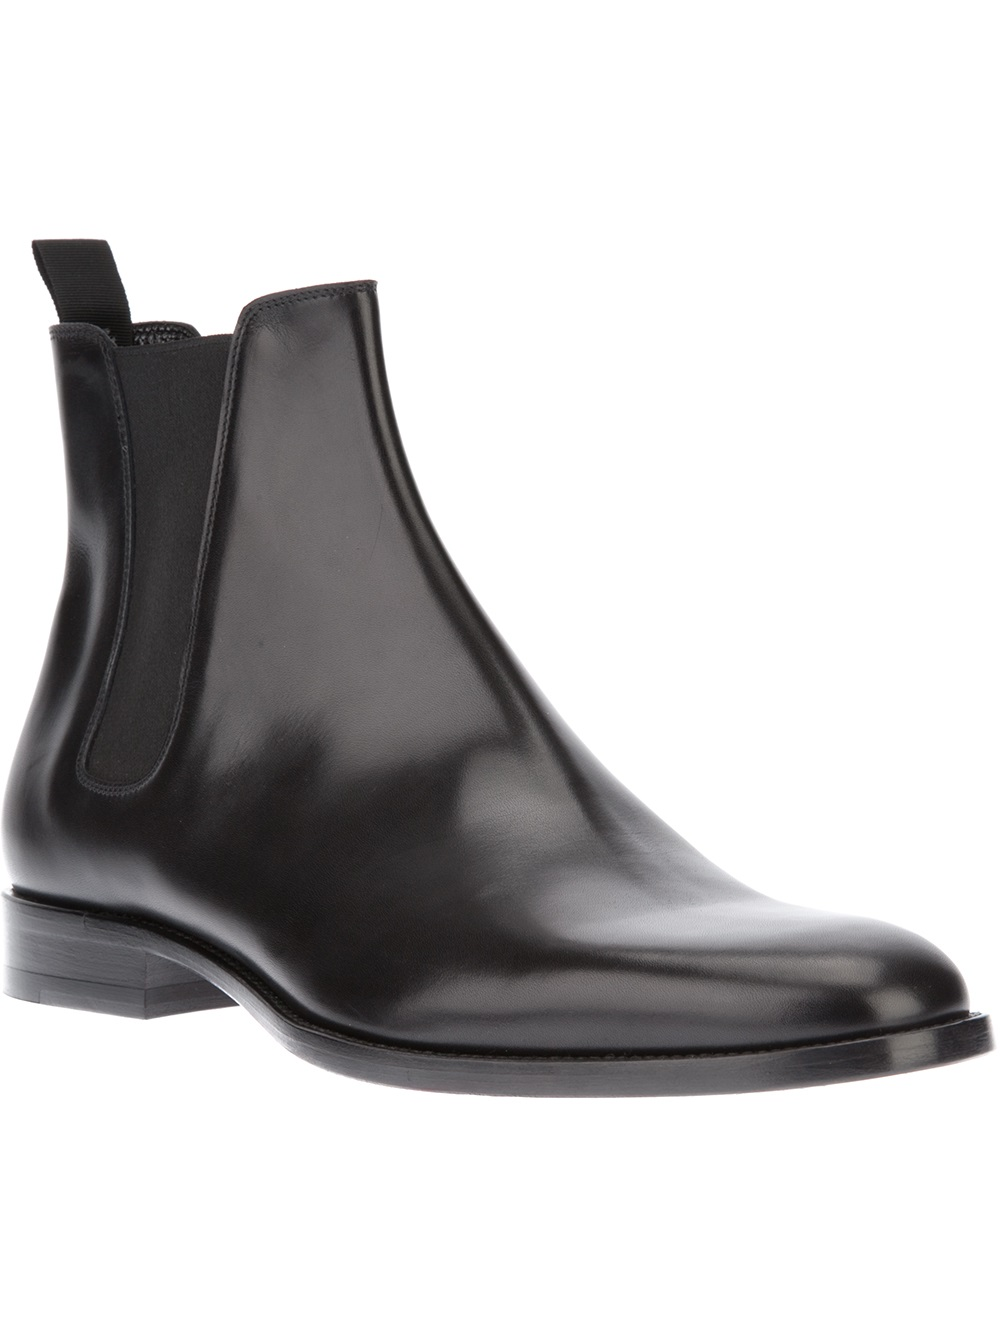 excellent online Yves Saint Laurent Leather Ankle Boots buy cheap popular official online eEKtY9m